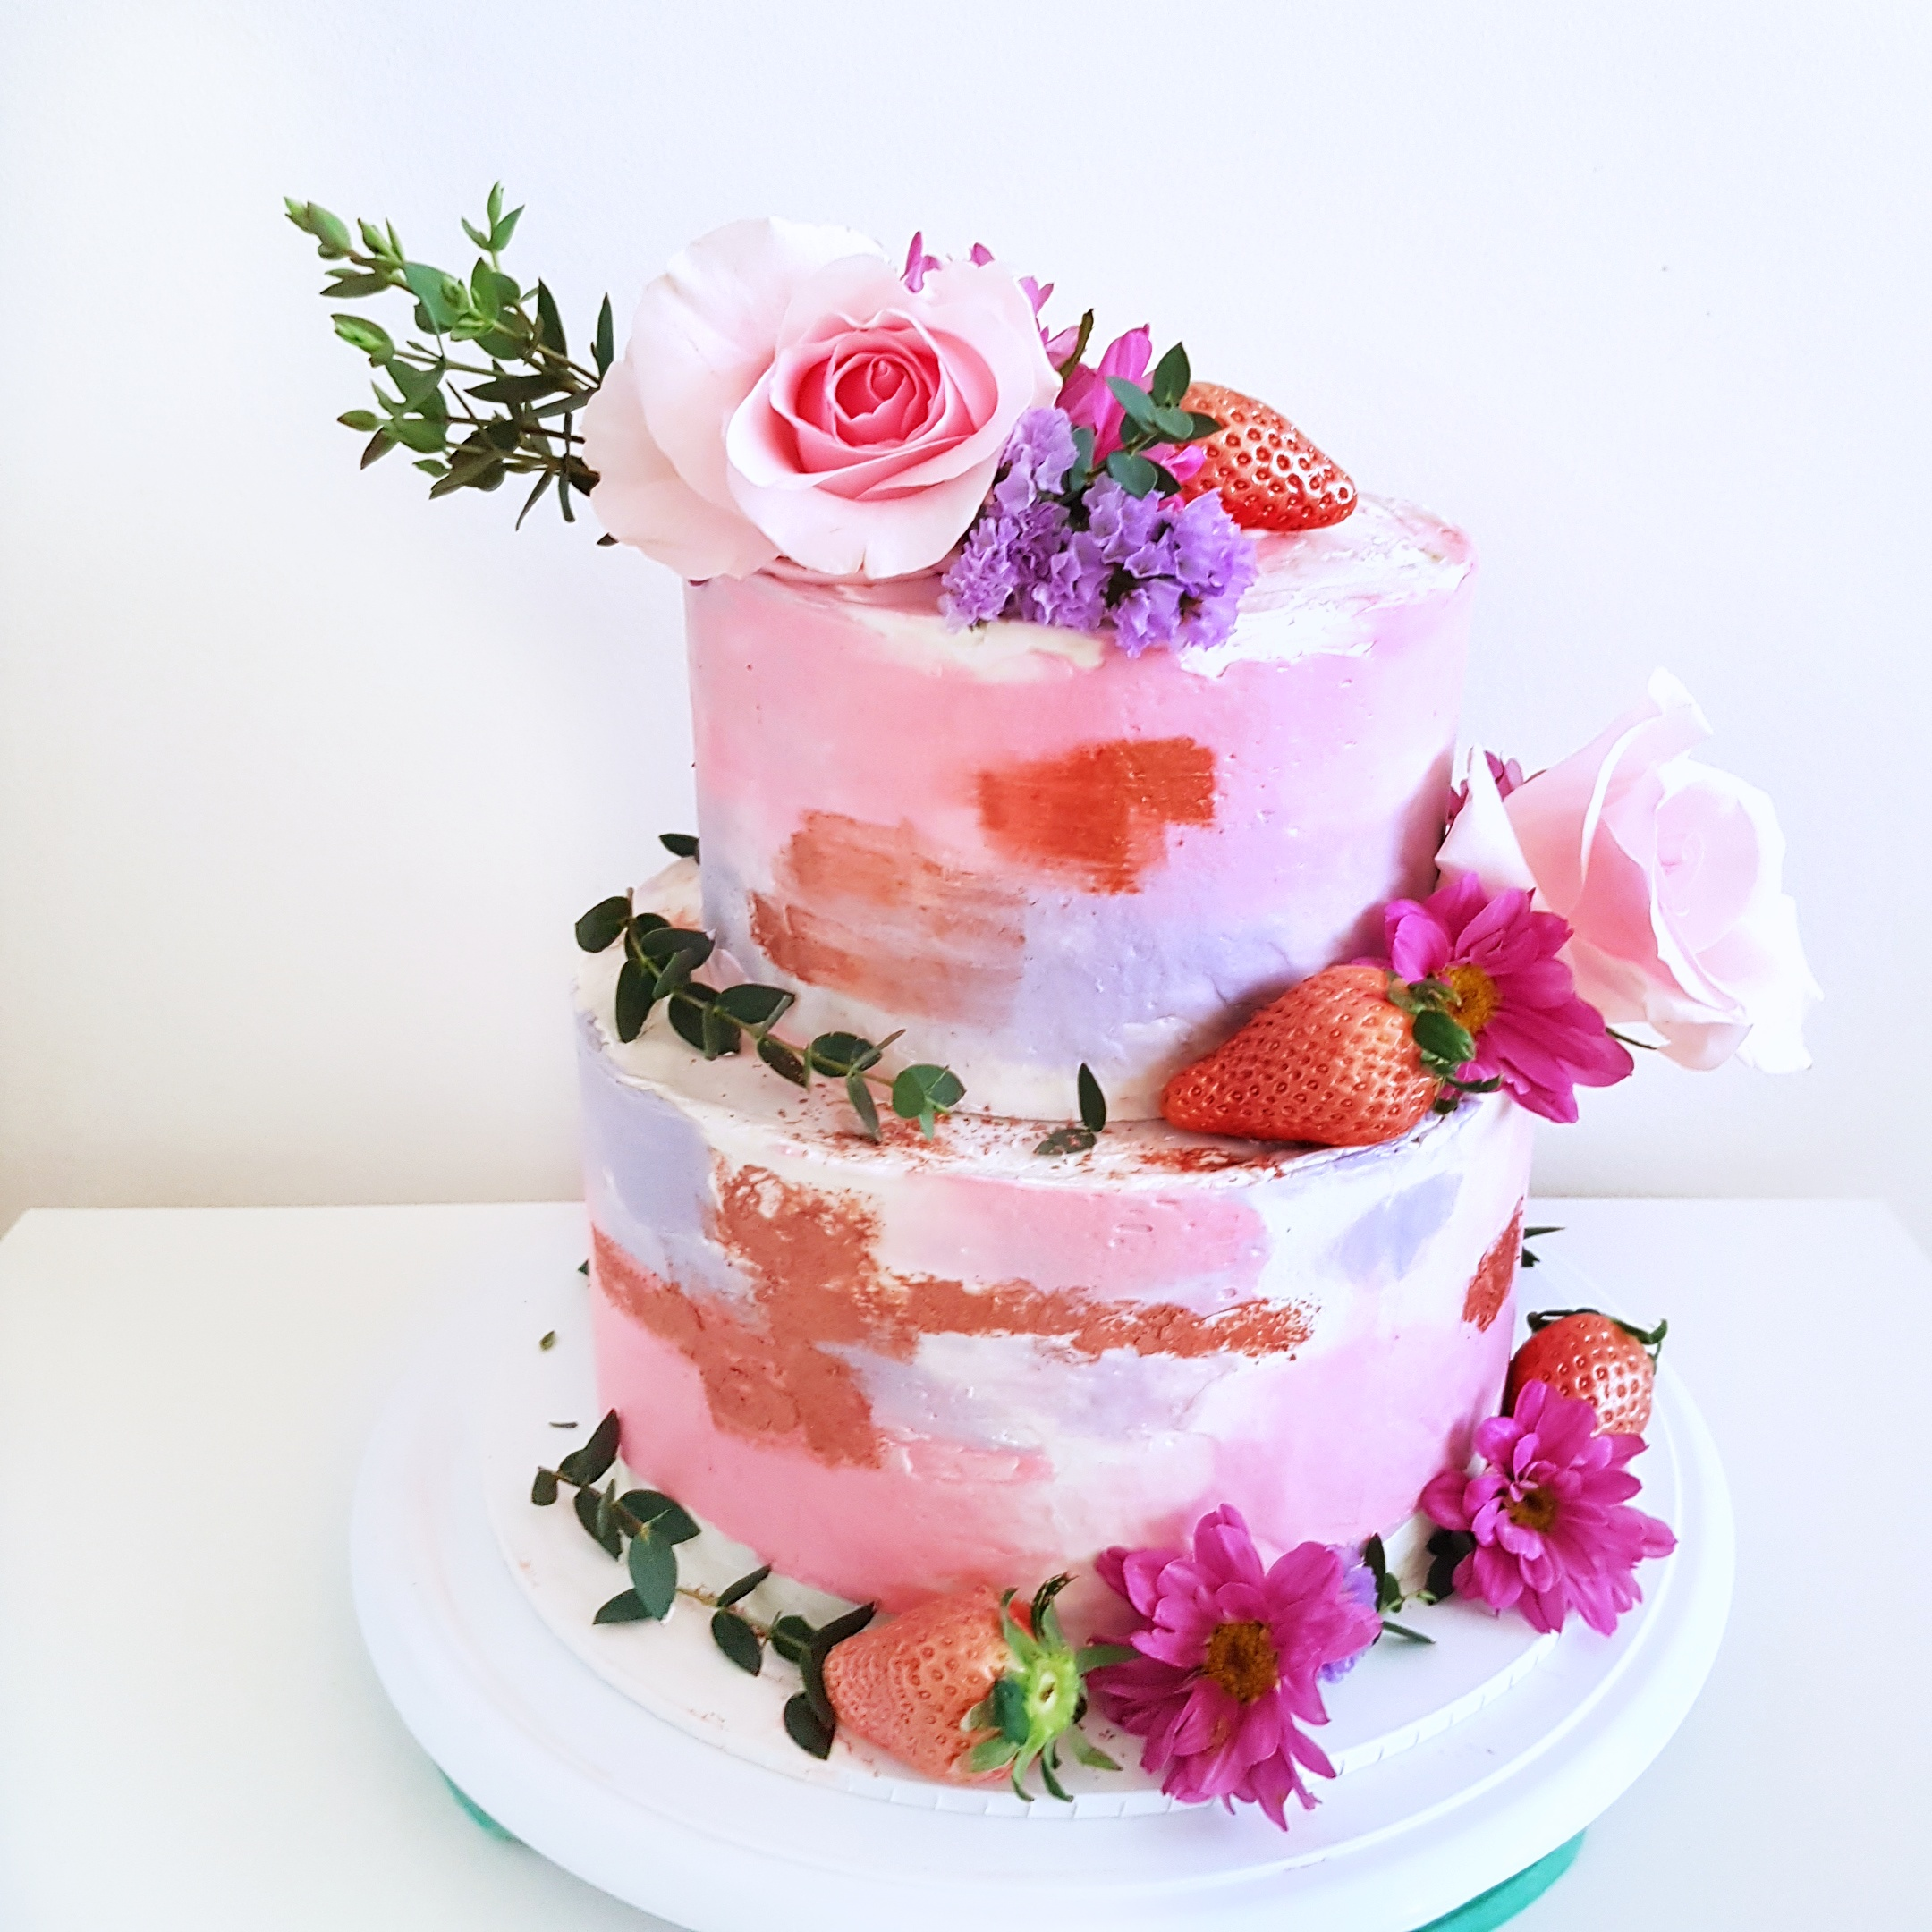 PInk and rose gold floral cake by The Baking Experiment